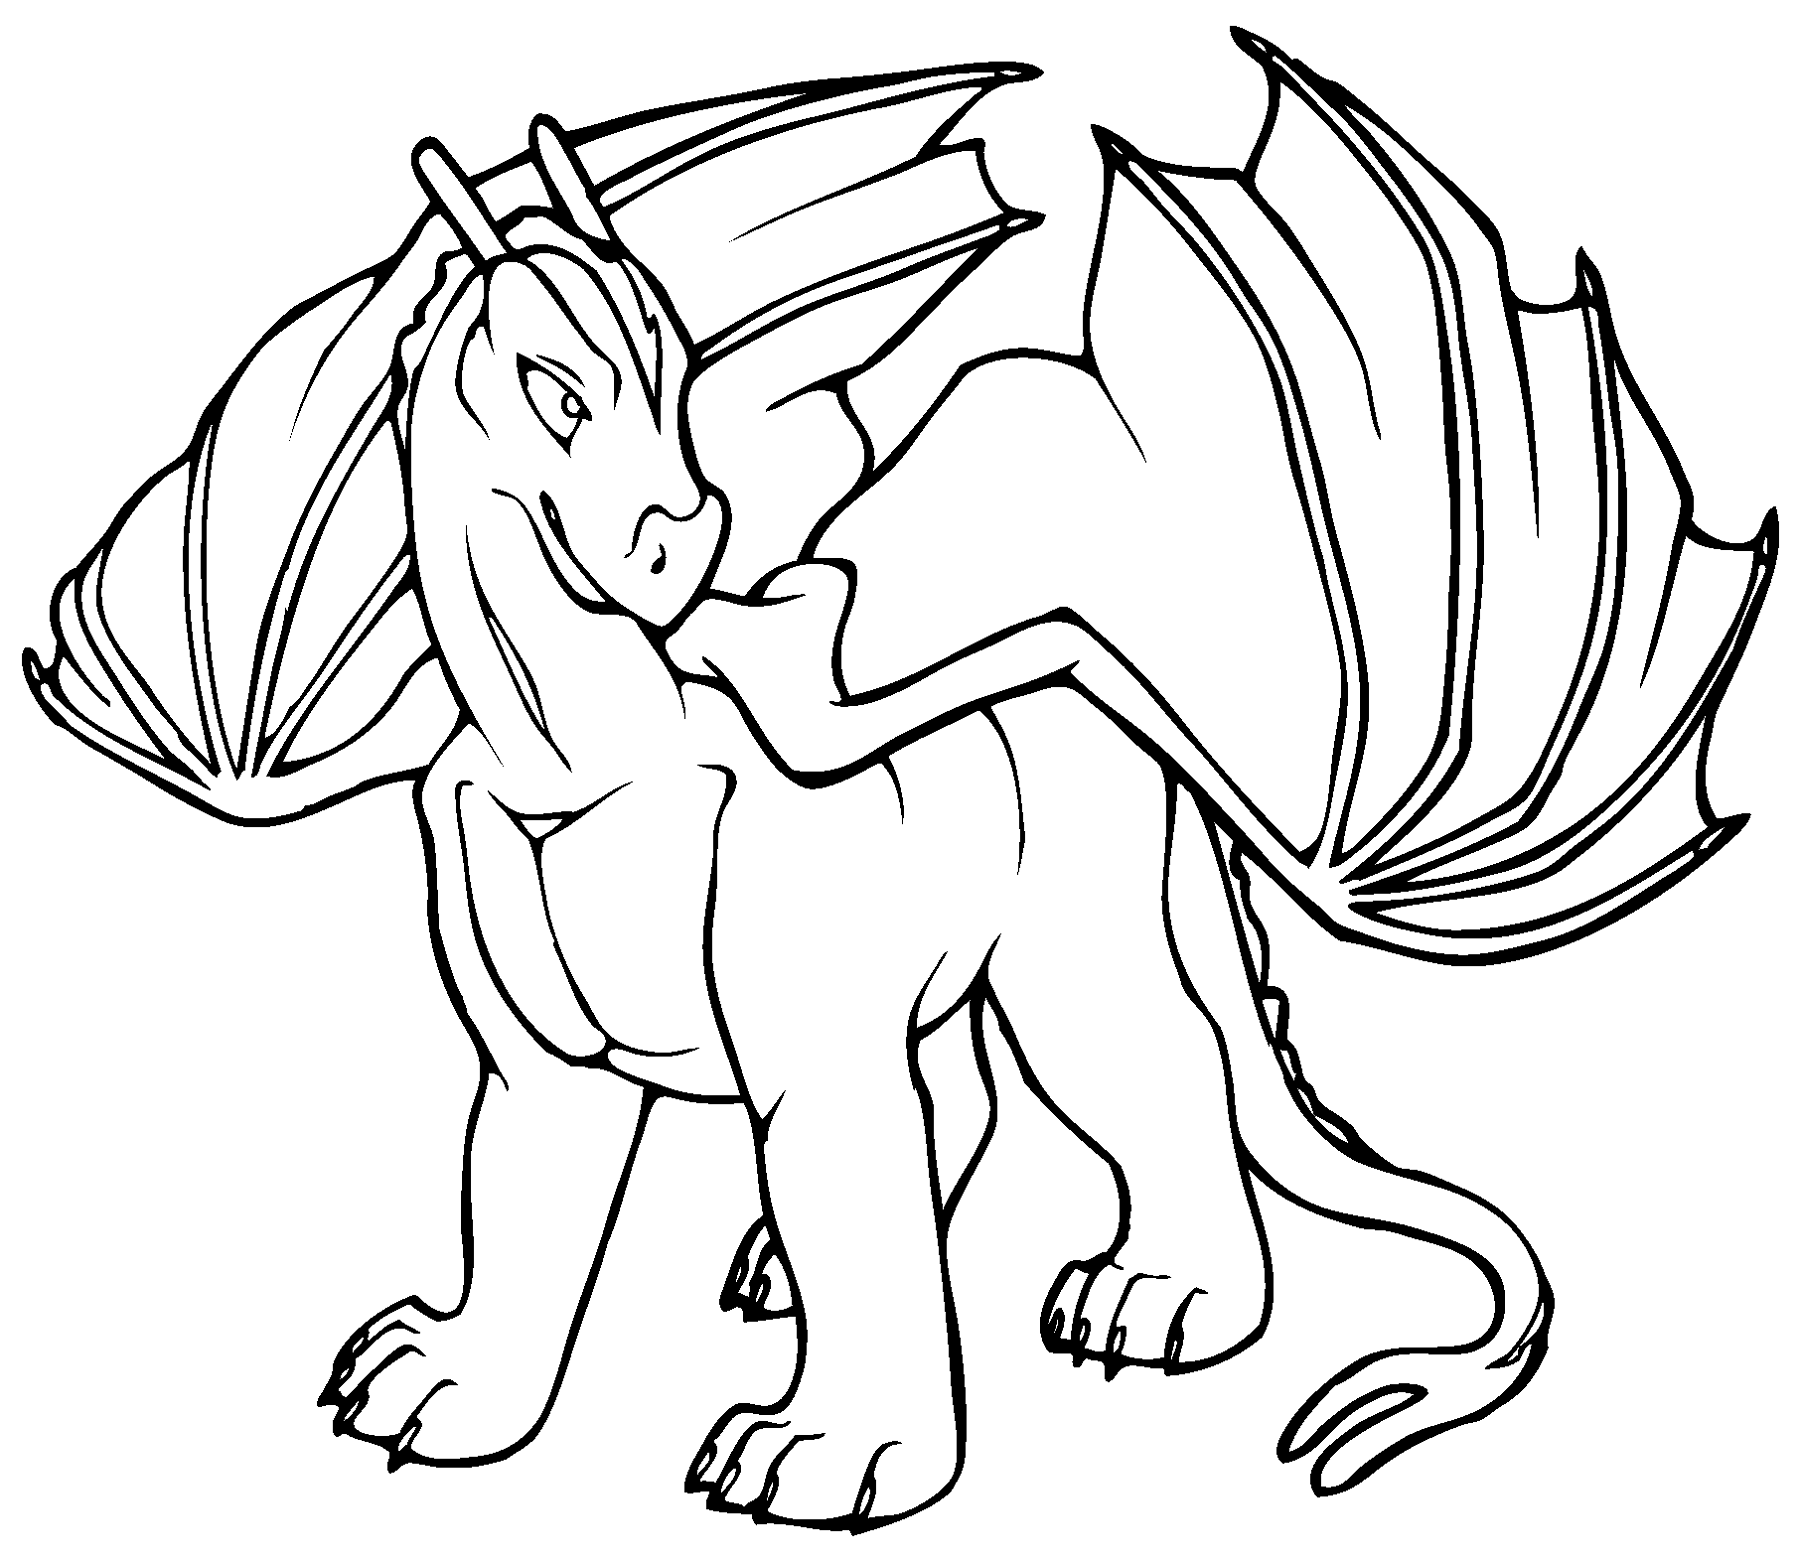 coloring dragon top 10 free printable chinese dragon coloring pages online coloring dragon